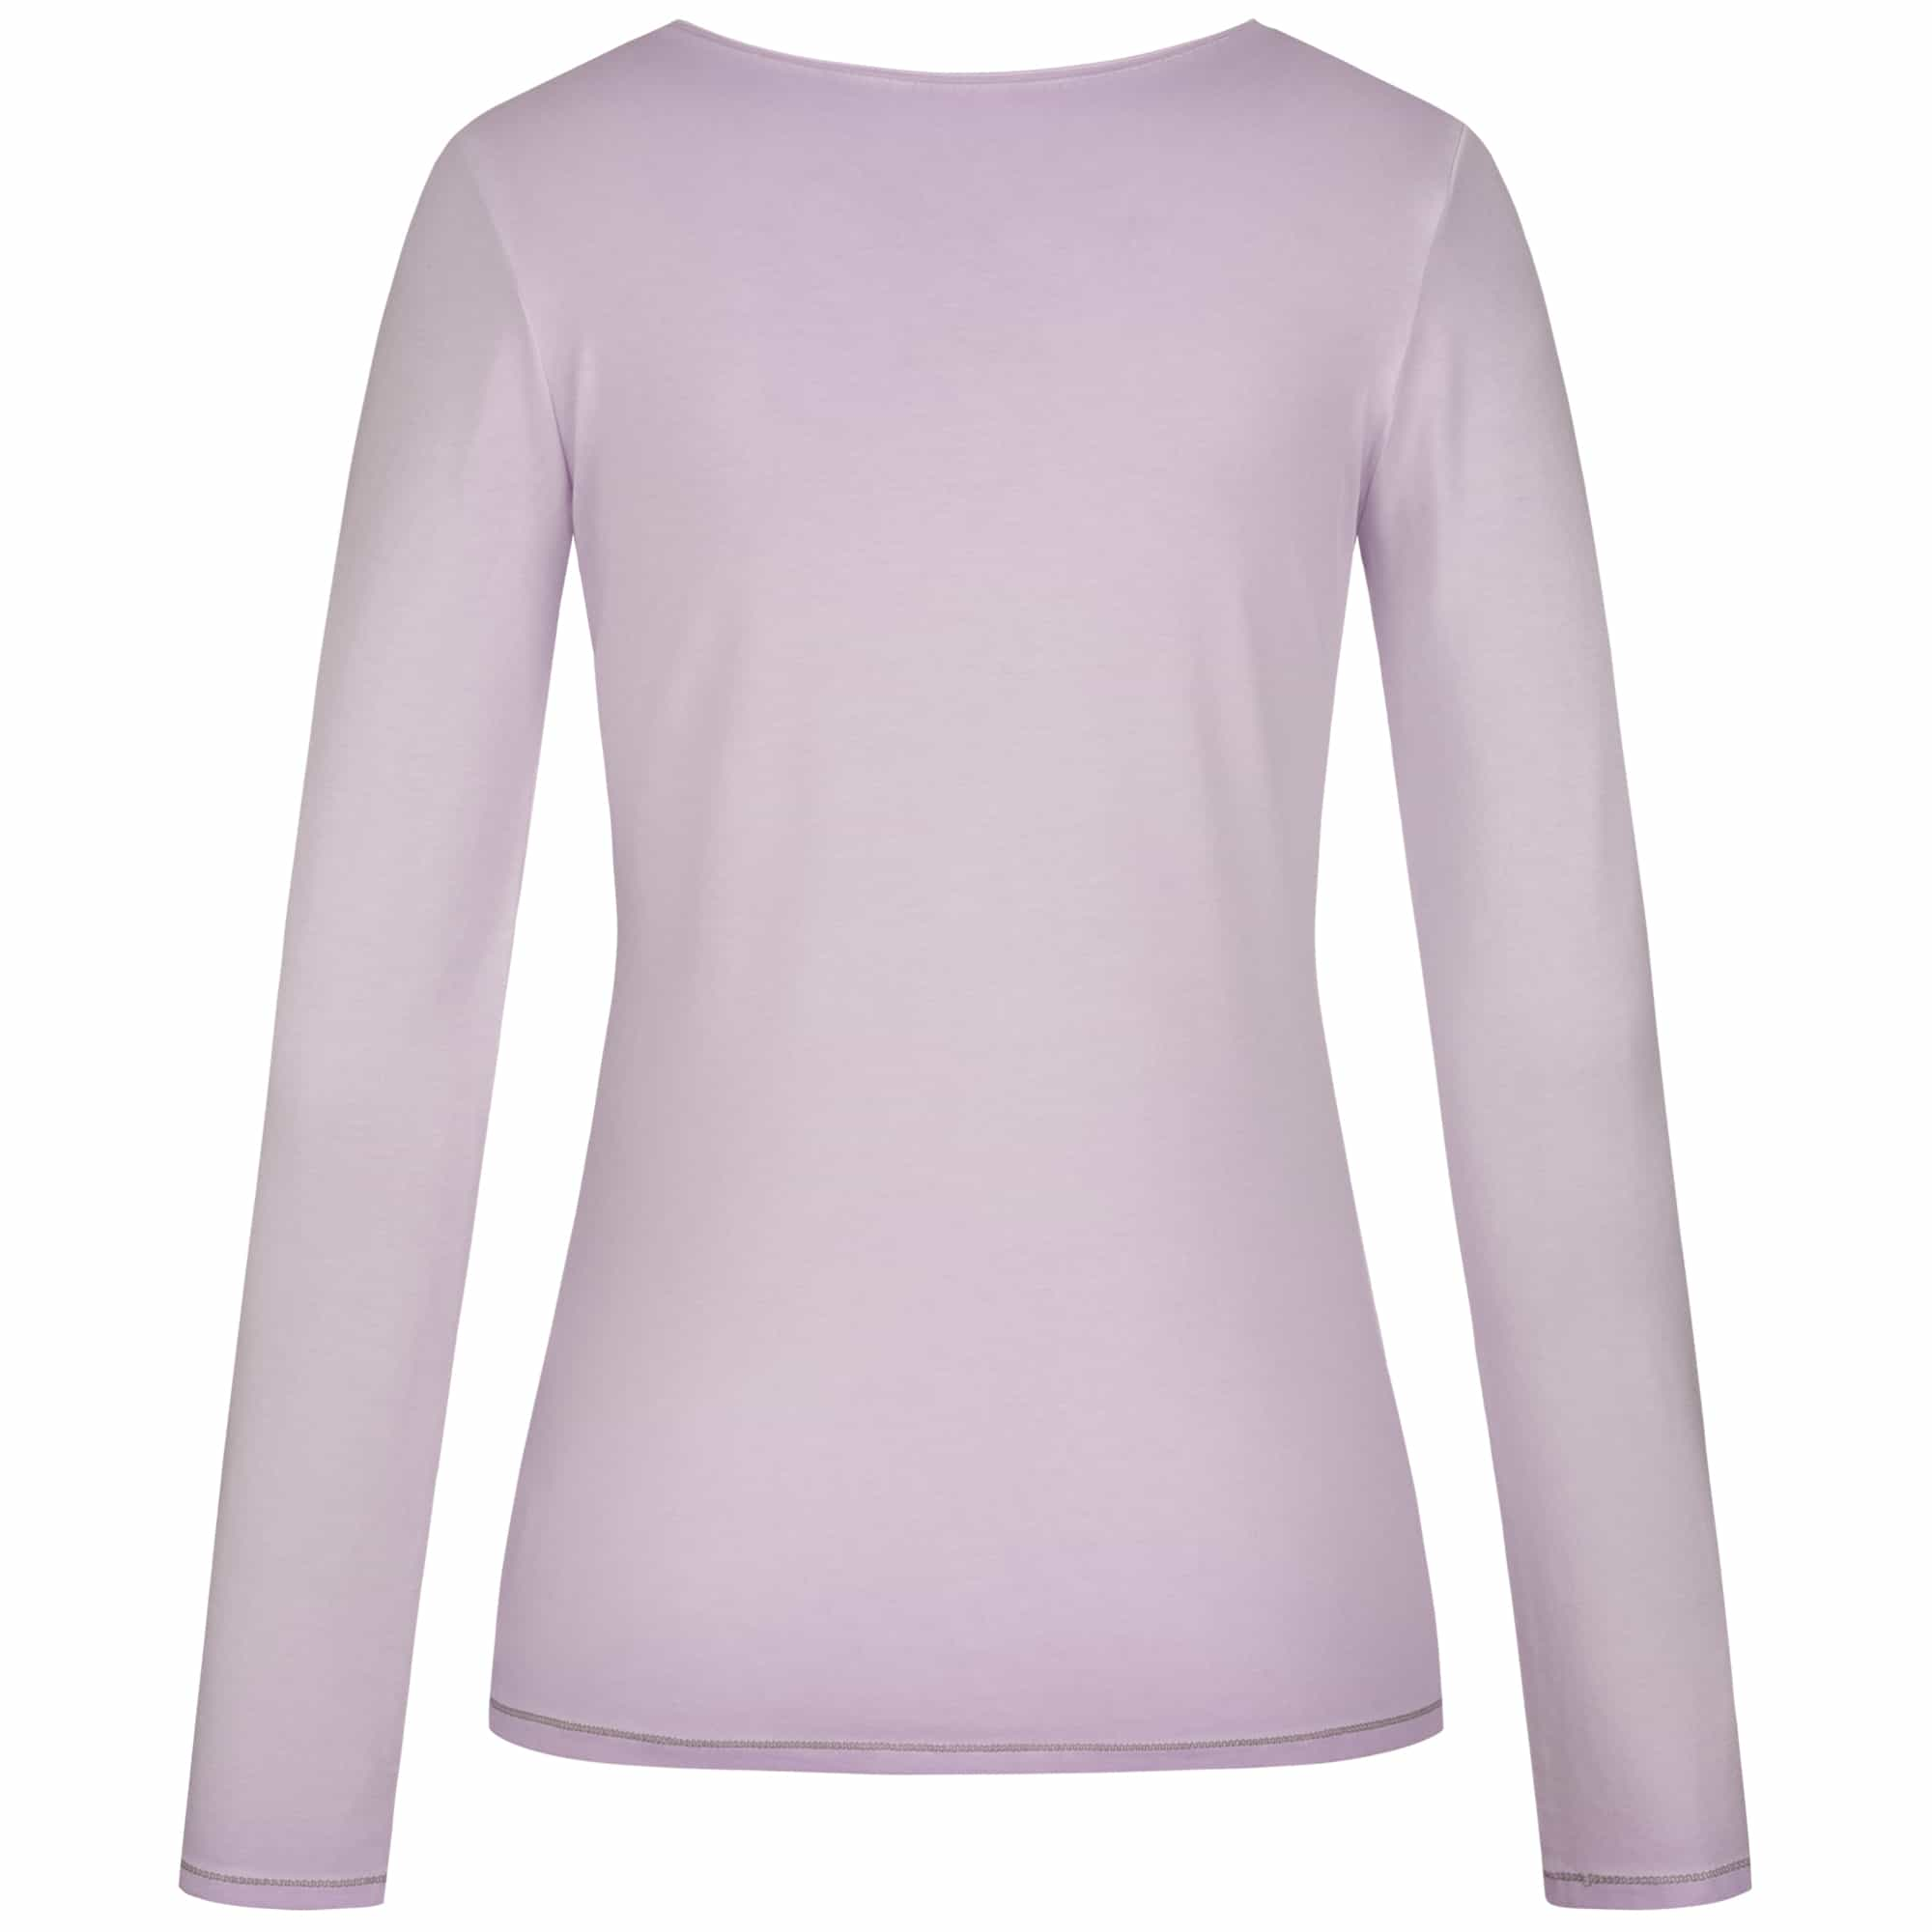 U-Shirt Pale Violet, Back kamah CORE Collection